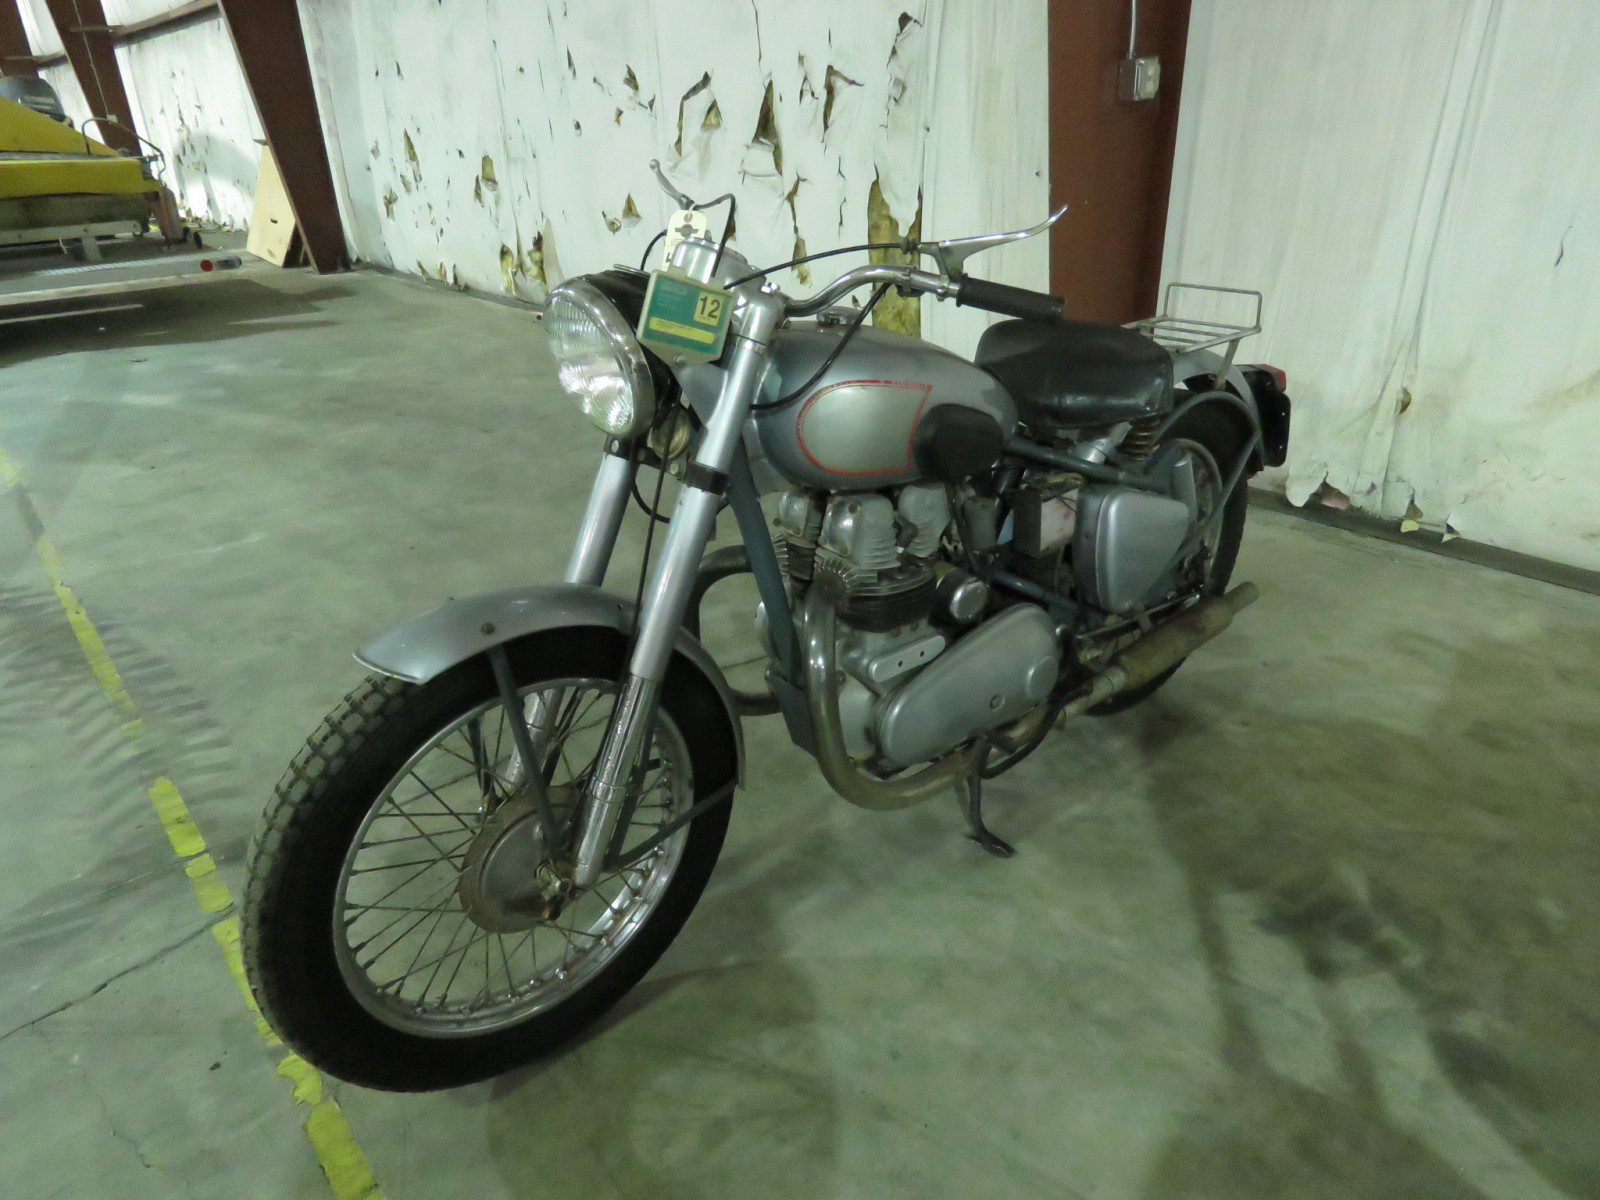 1952 Royal Enfield 500 Twin Motorcycle - Image 2